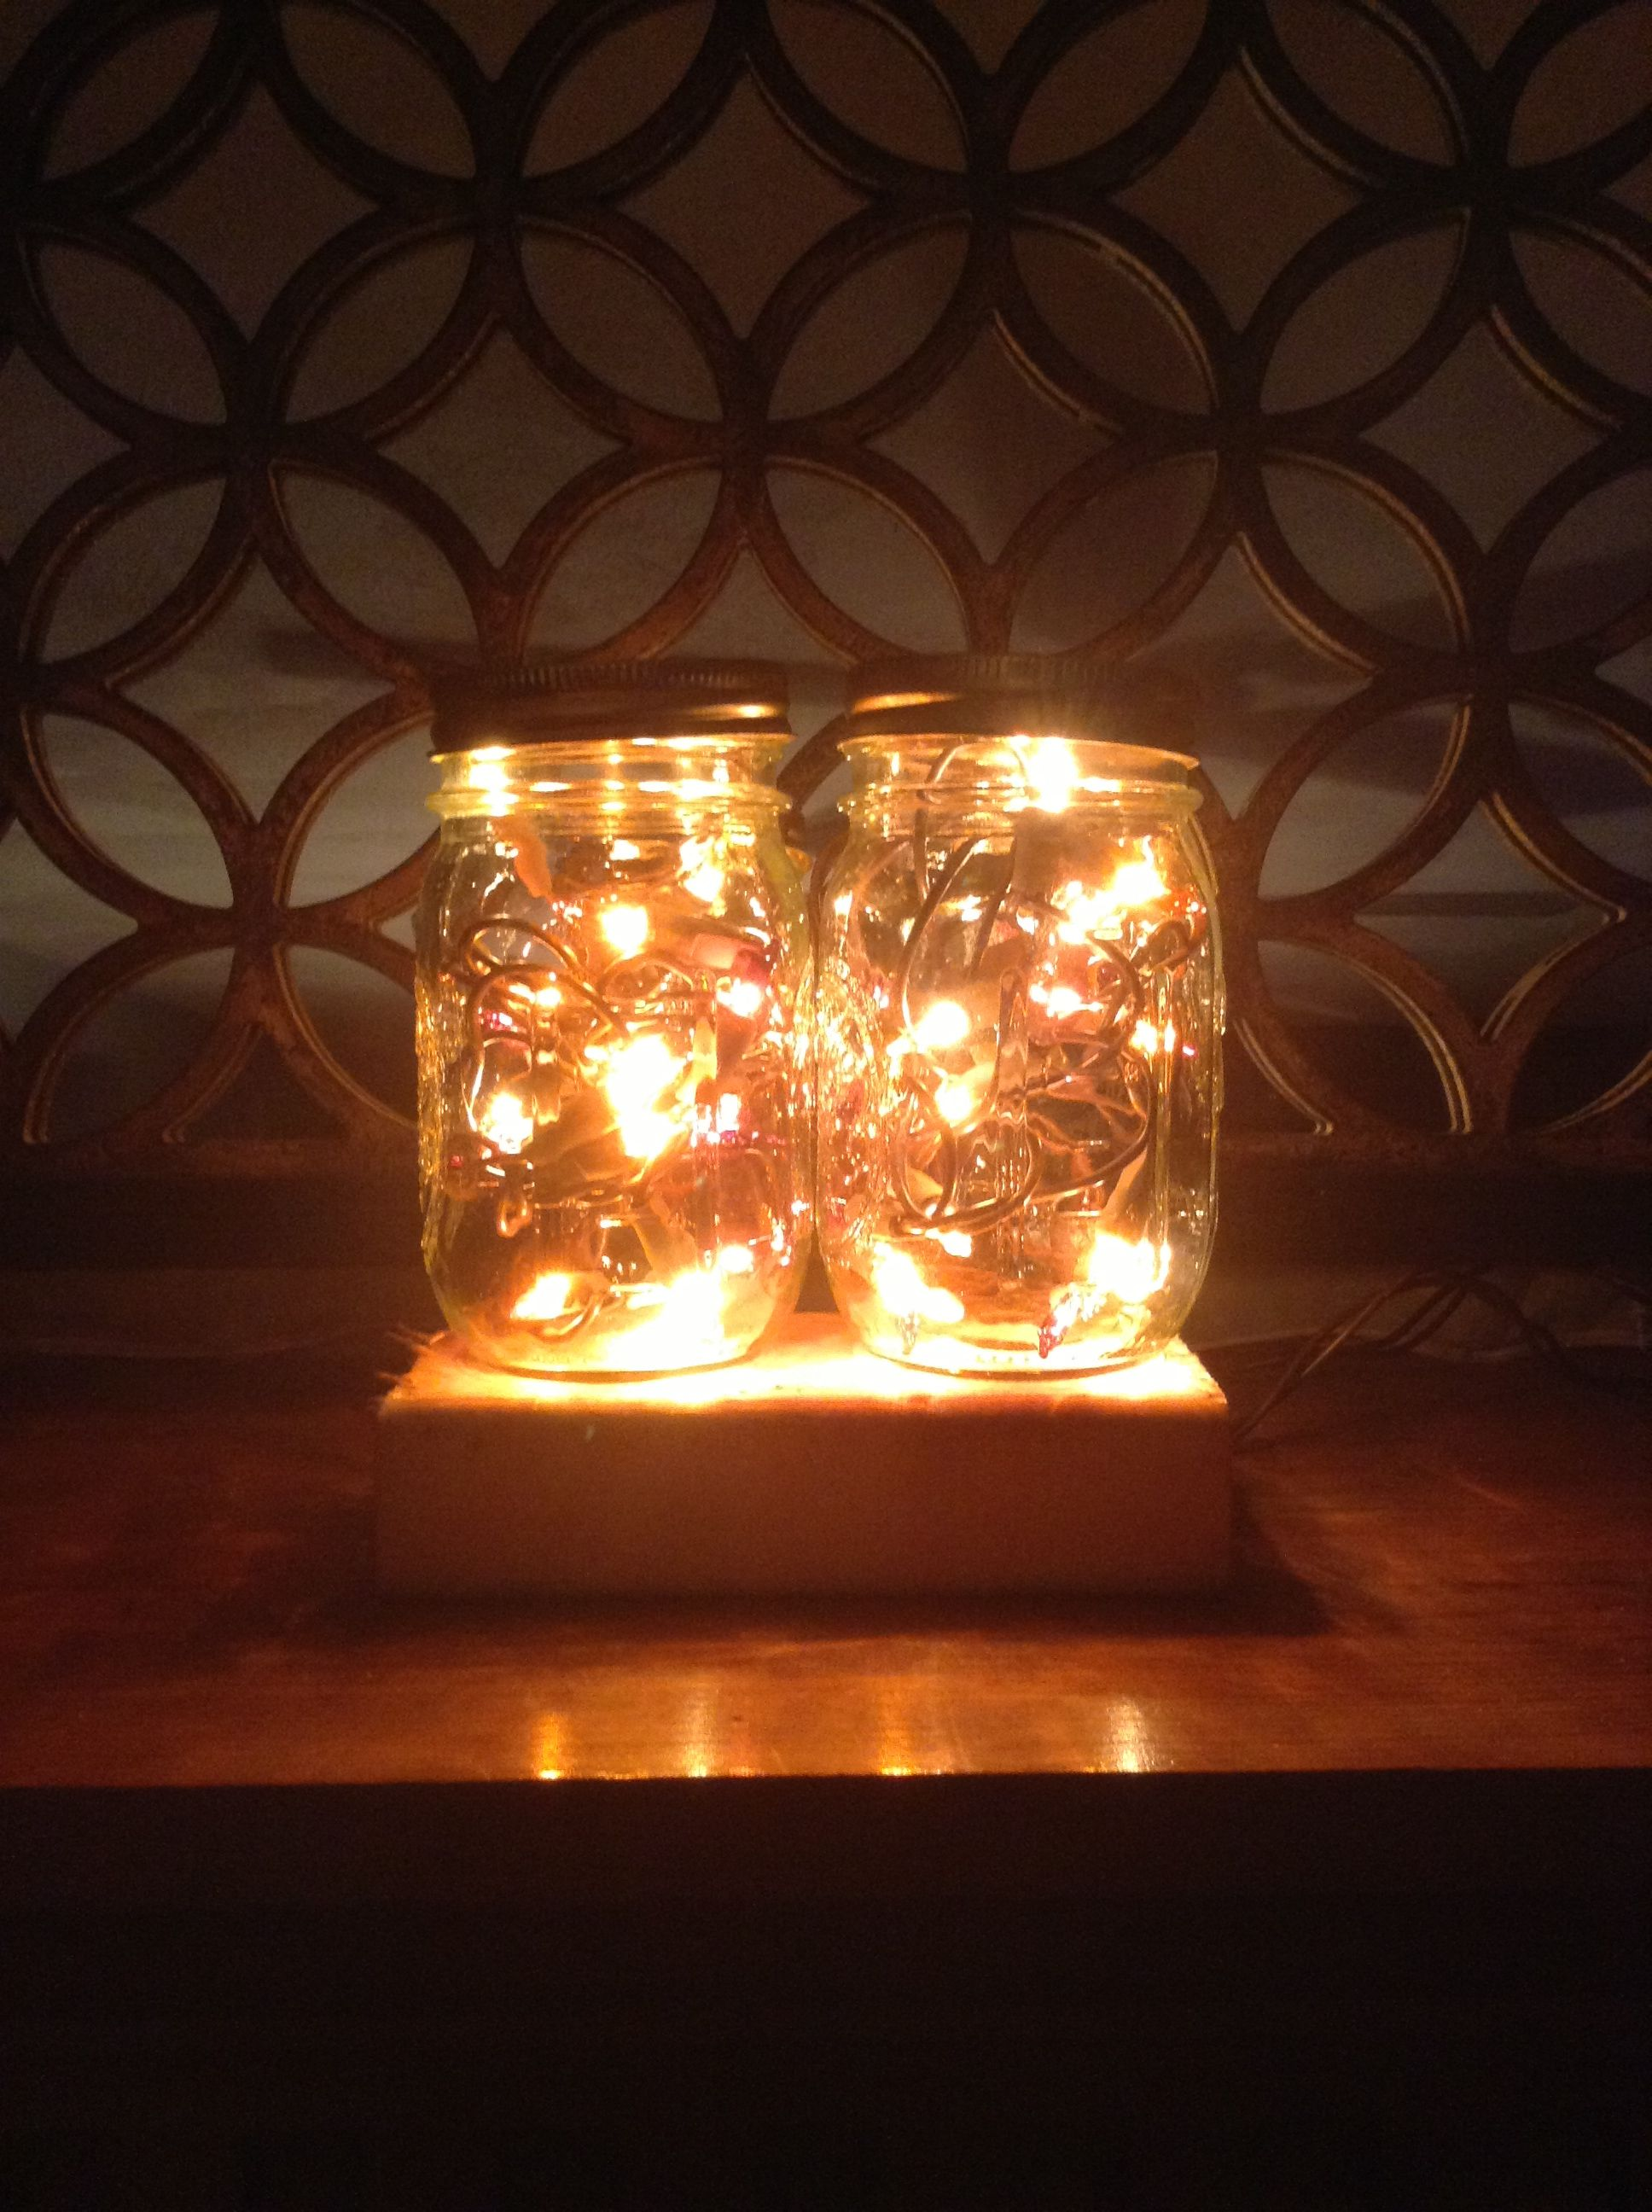 Autumn lights in mason jars. The metal was removed from the tops so the heat can escape.